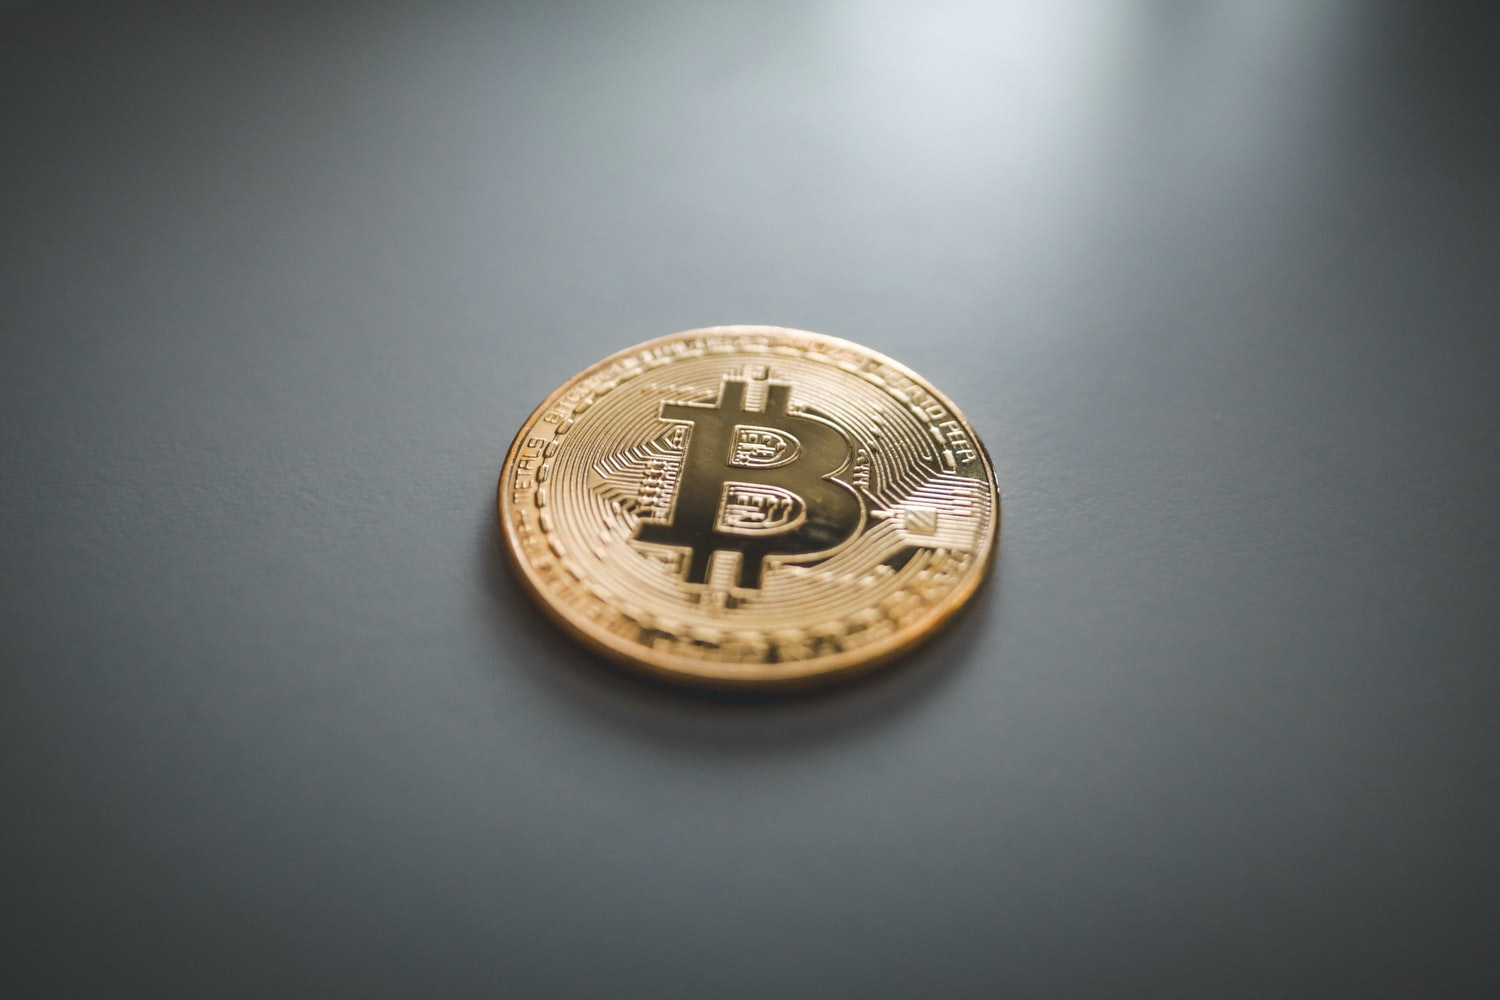 DO BITCOIN HAVE THE POTENTIAL OF WIPING OUT THE ROLE OF CENTRAL BANKS?